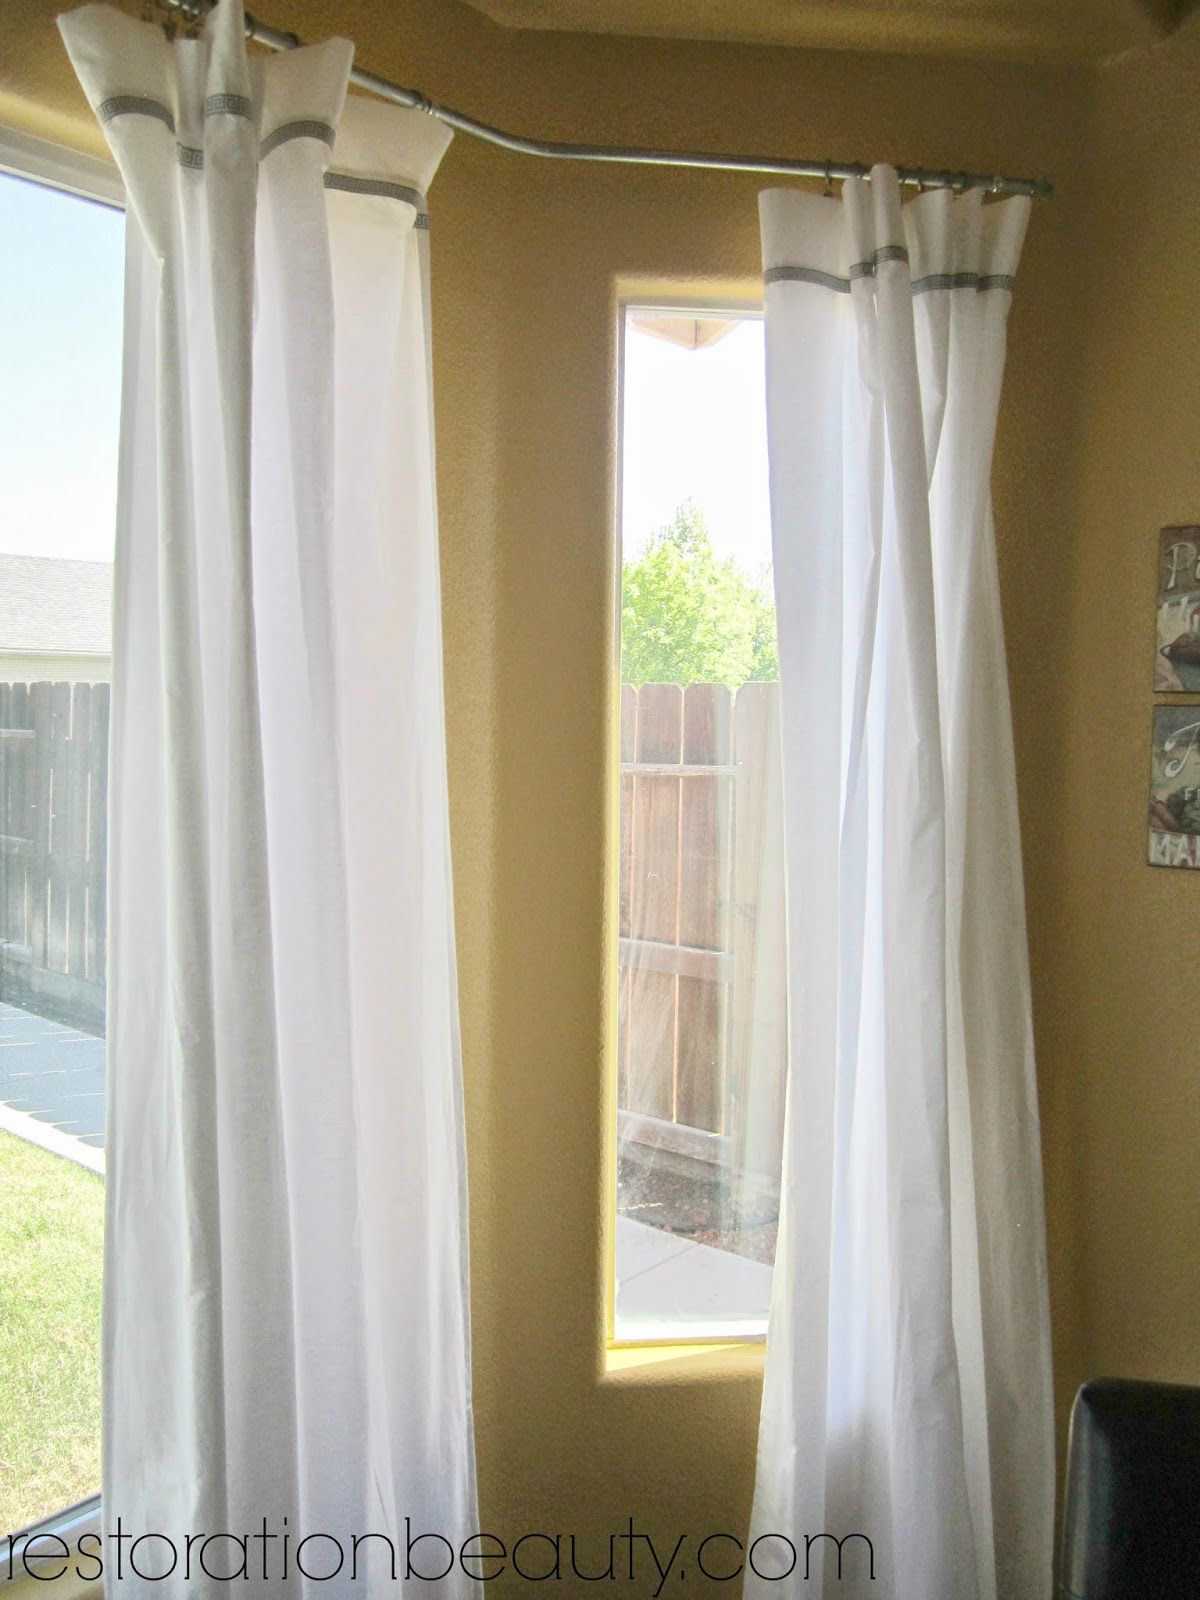 options square windows bay rods curtain for curtains rod window rail unbelievable flair